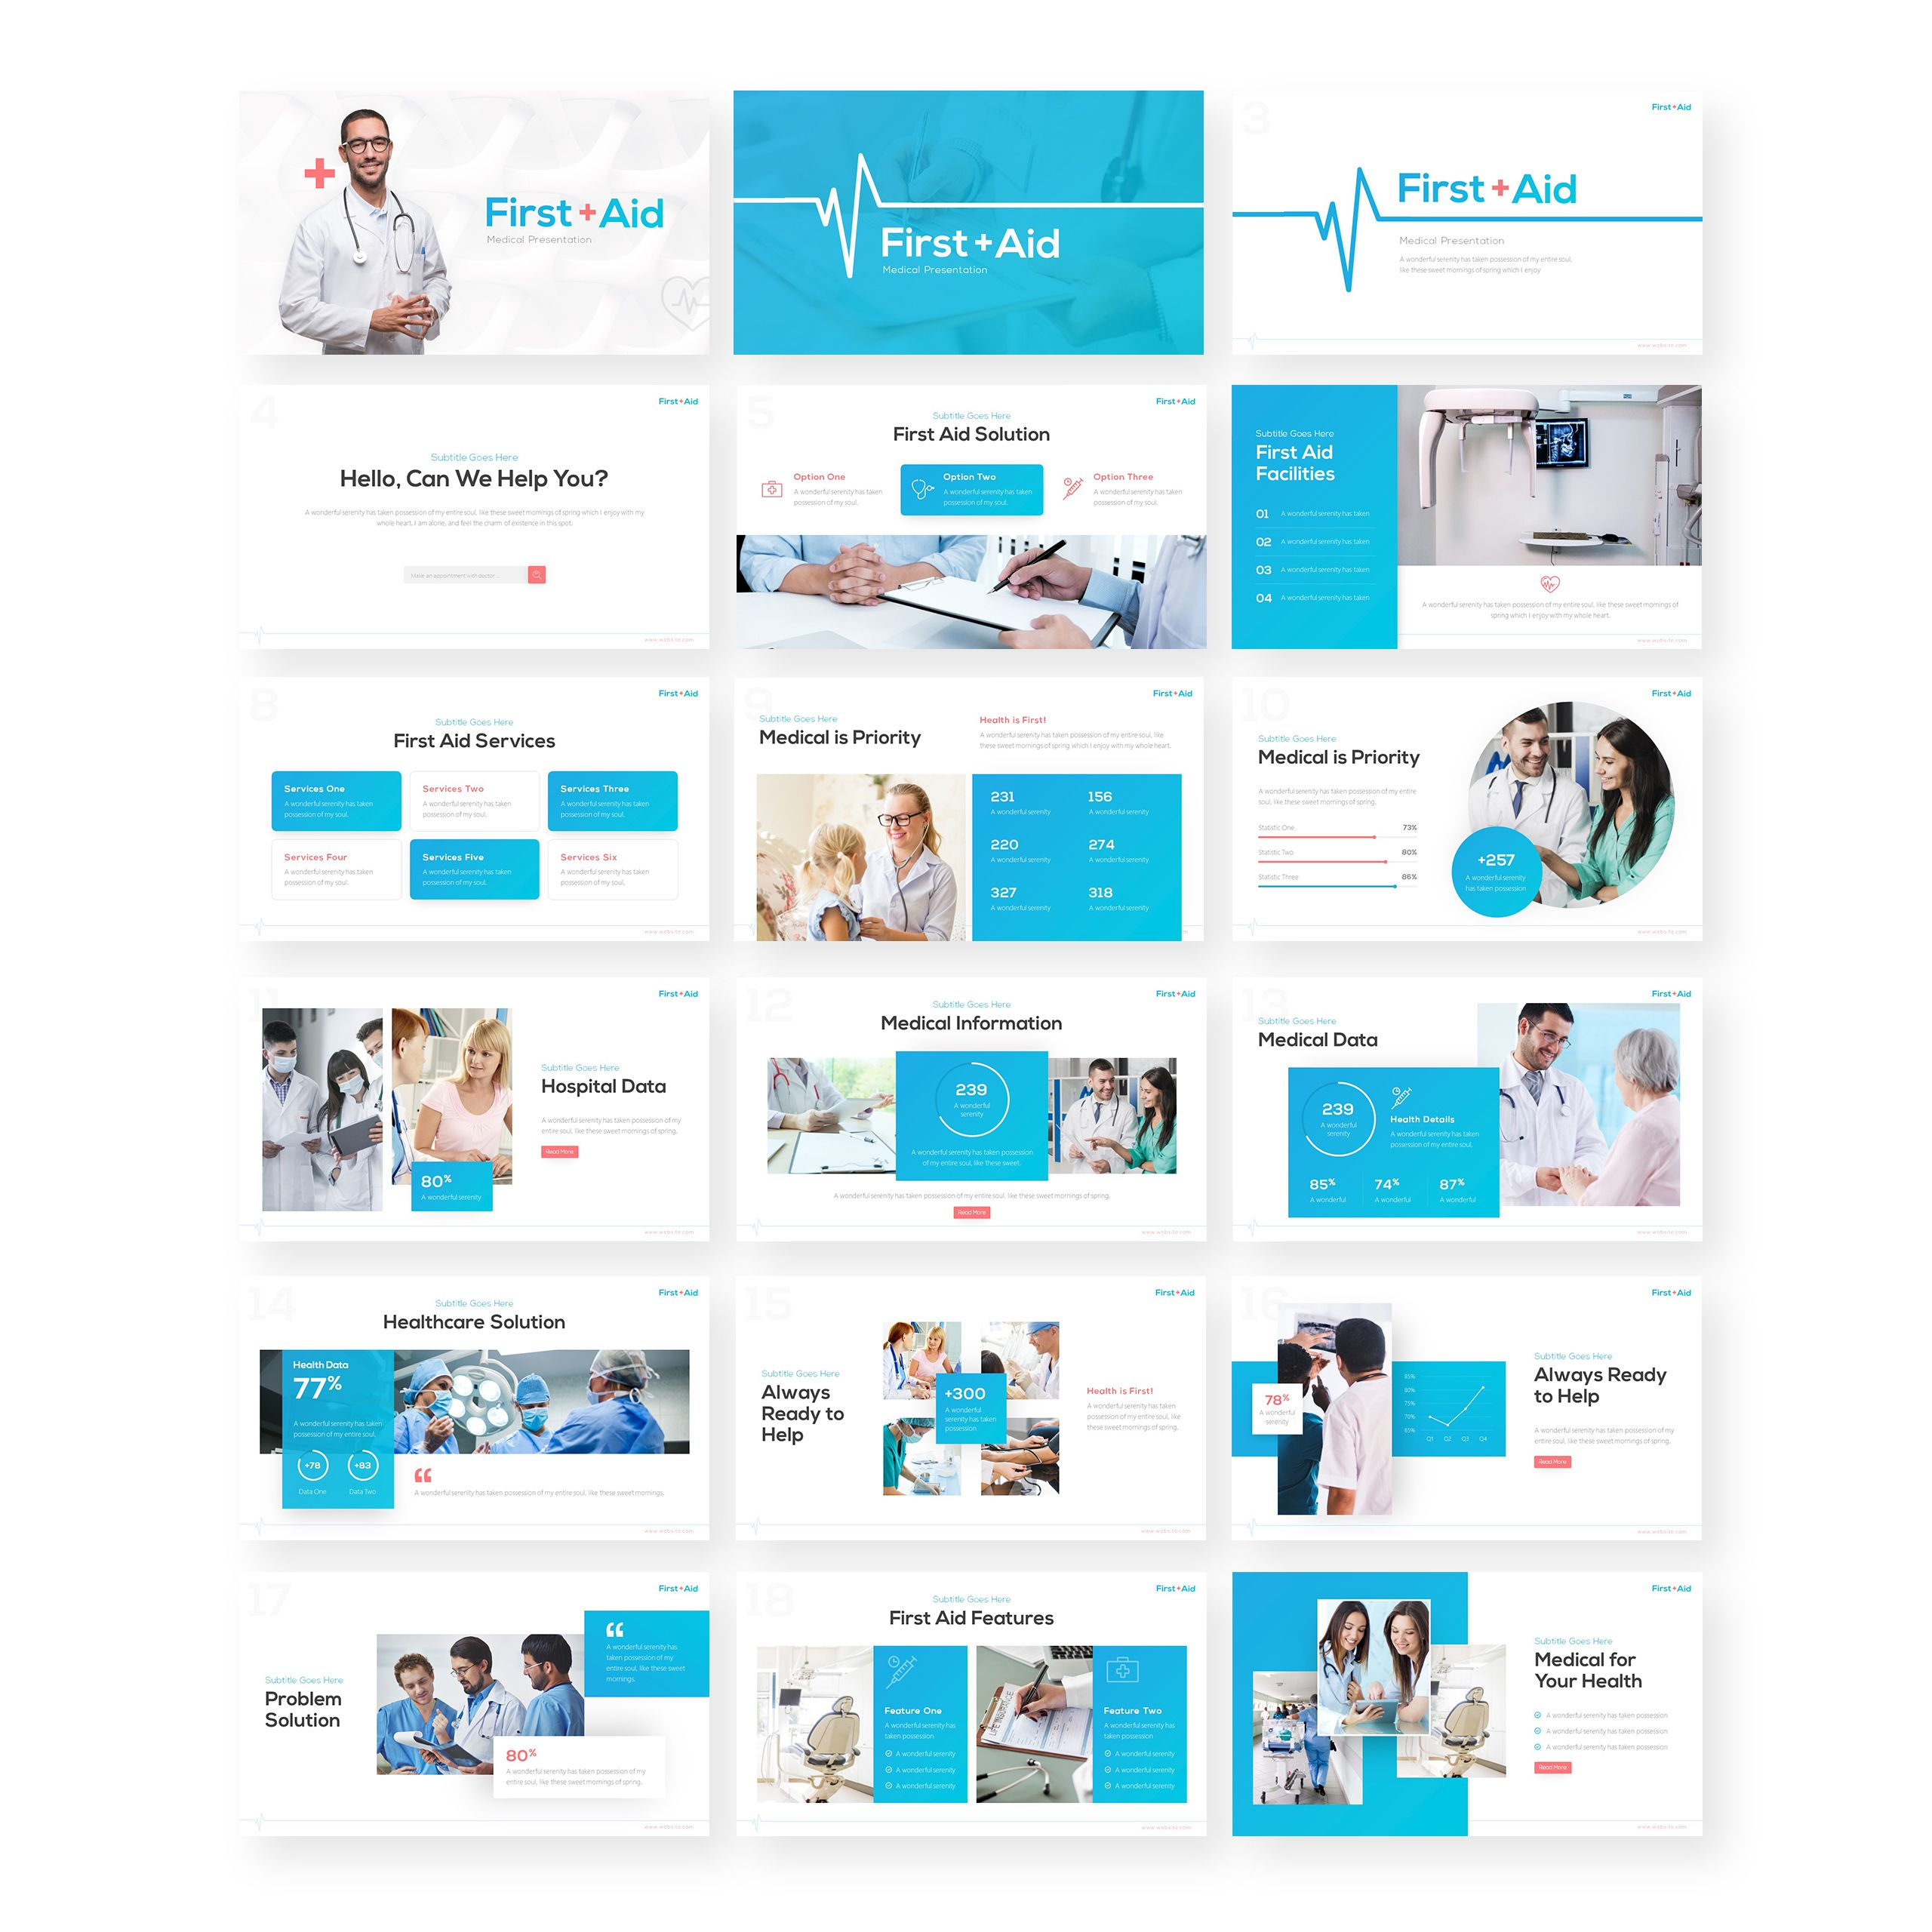 First Aid Medical Presentation Powerpoint Template 86955